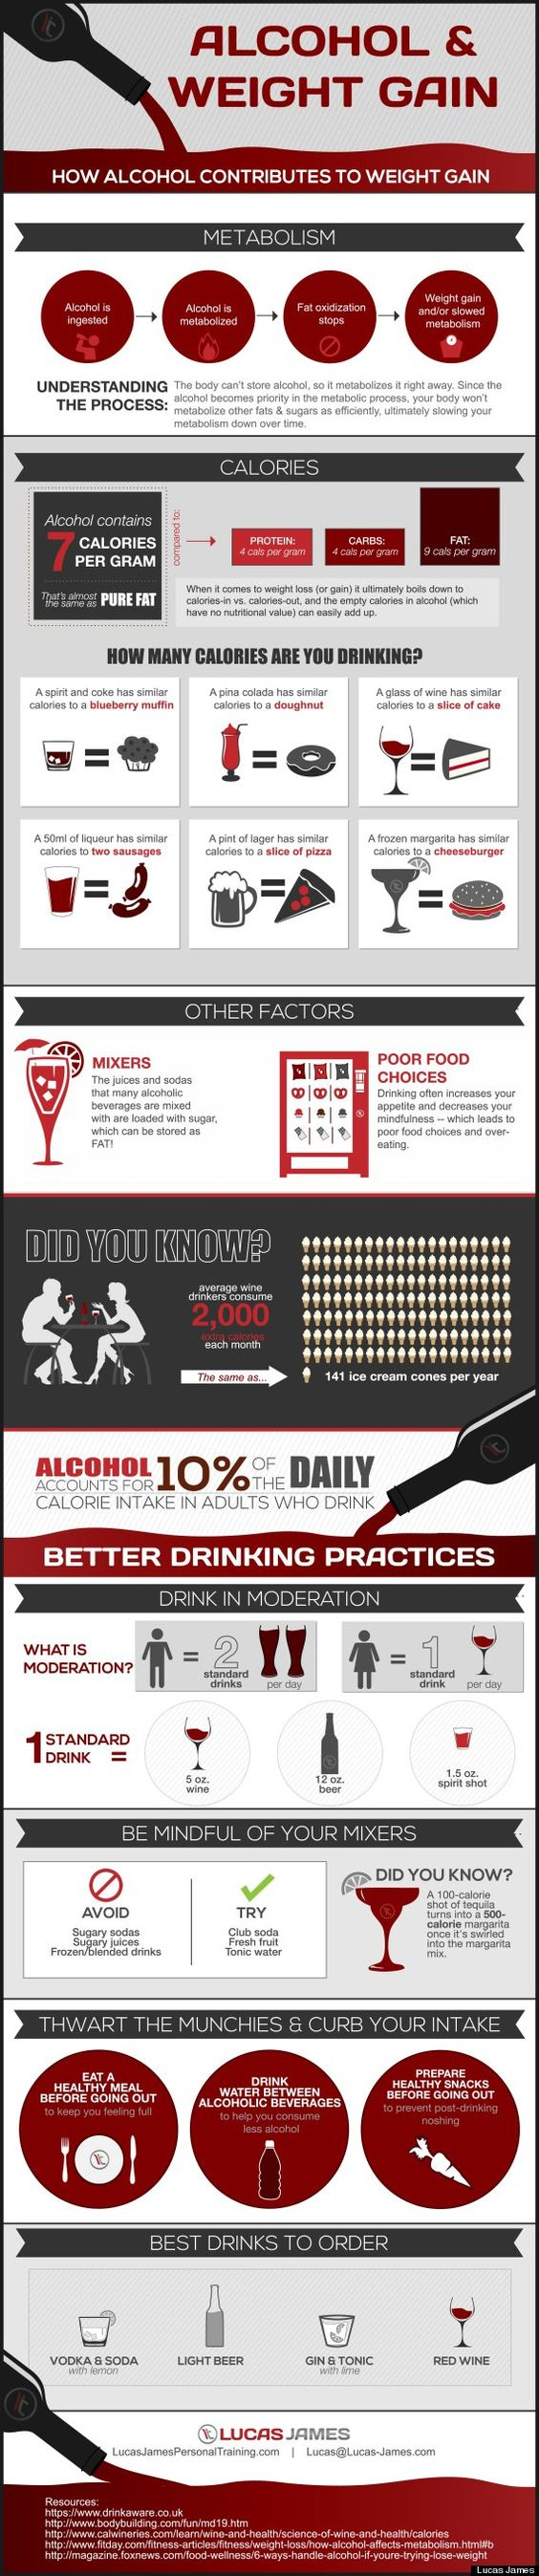 how alcohol contributes to weight gain